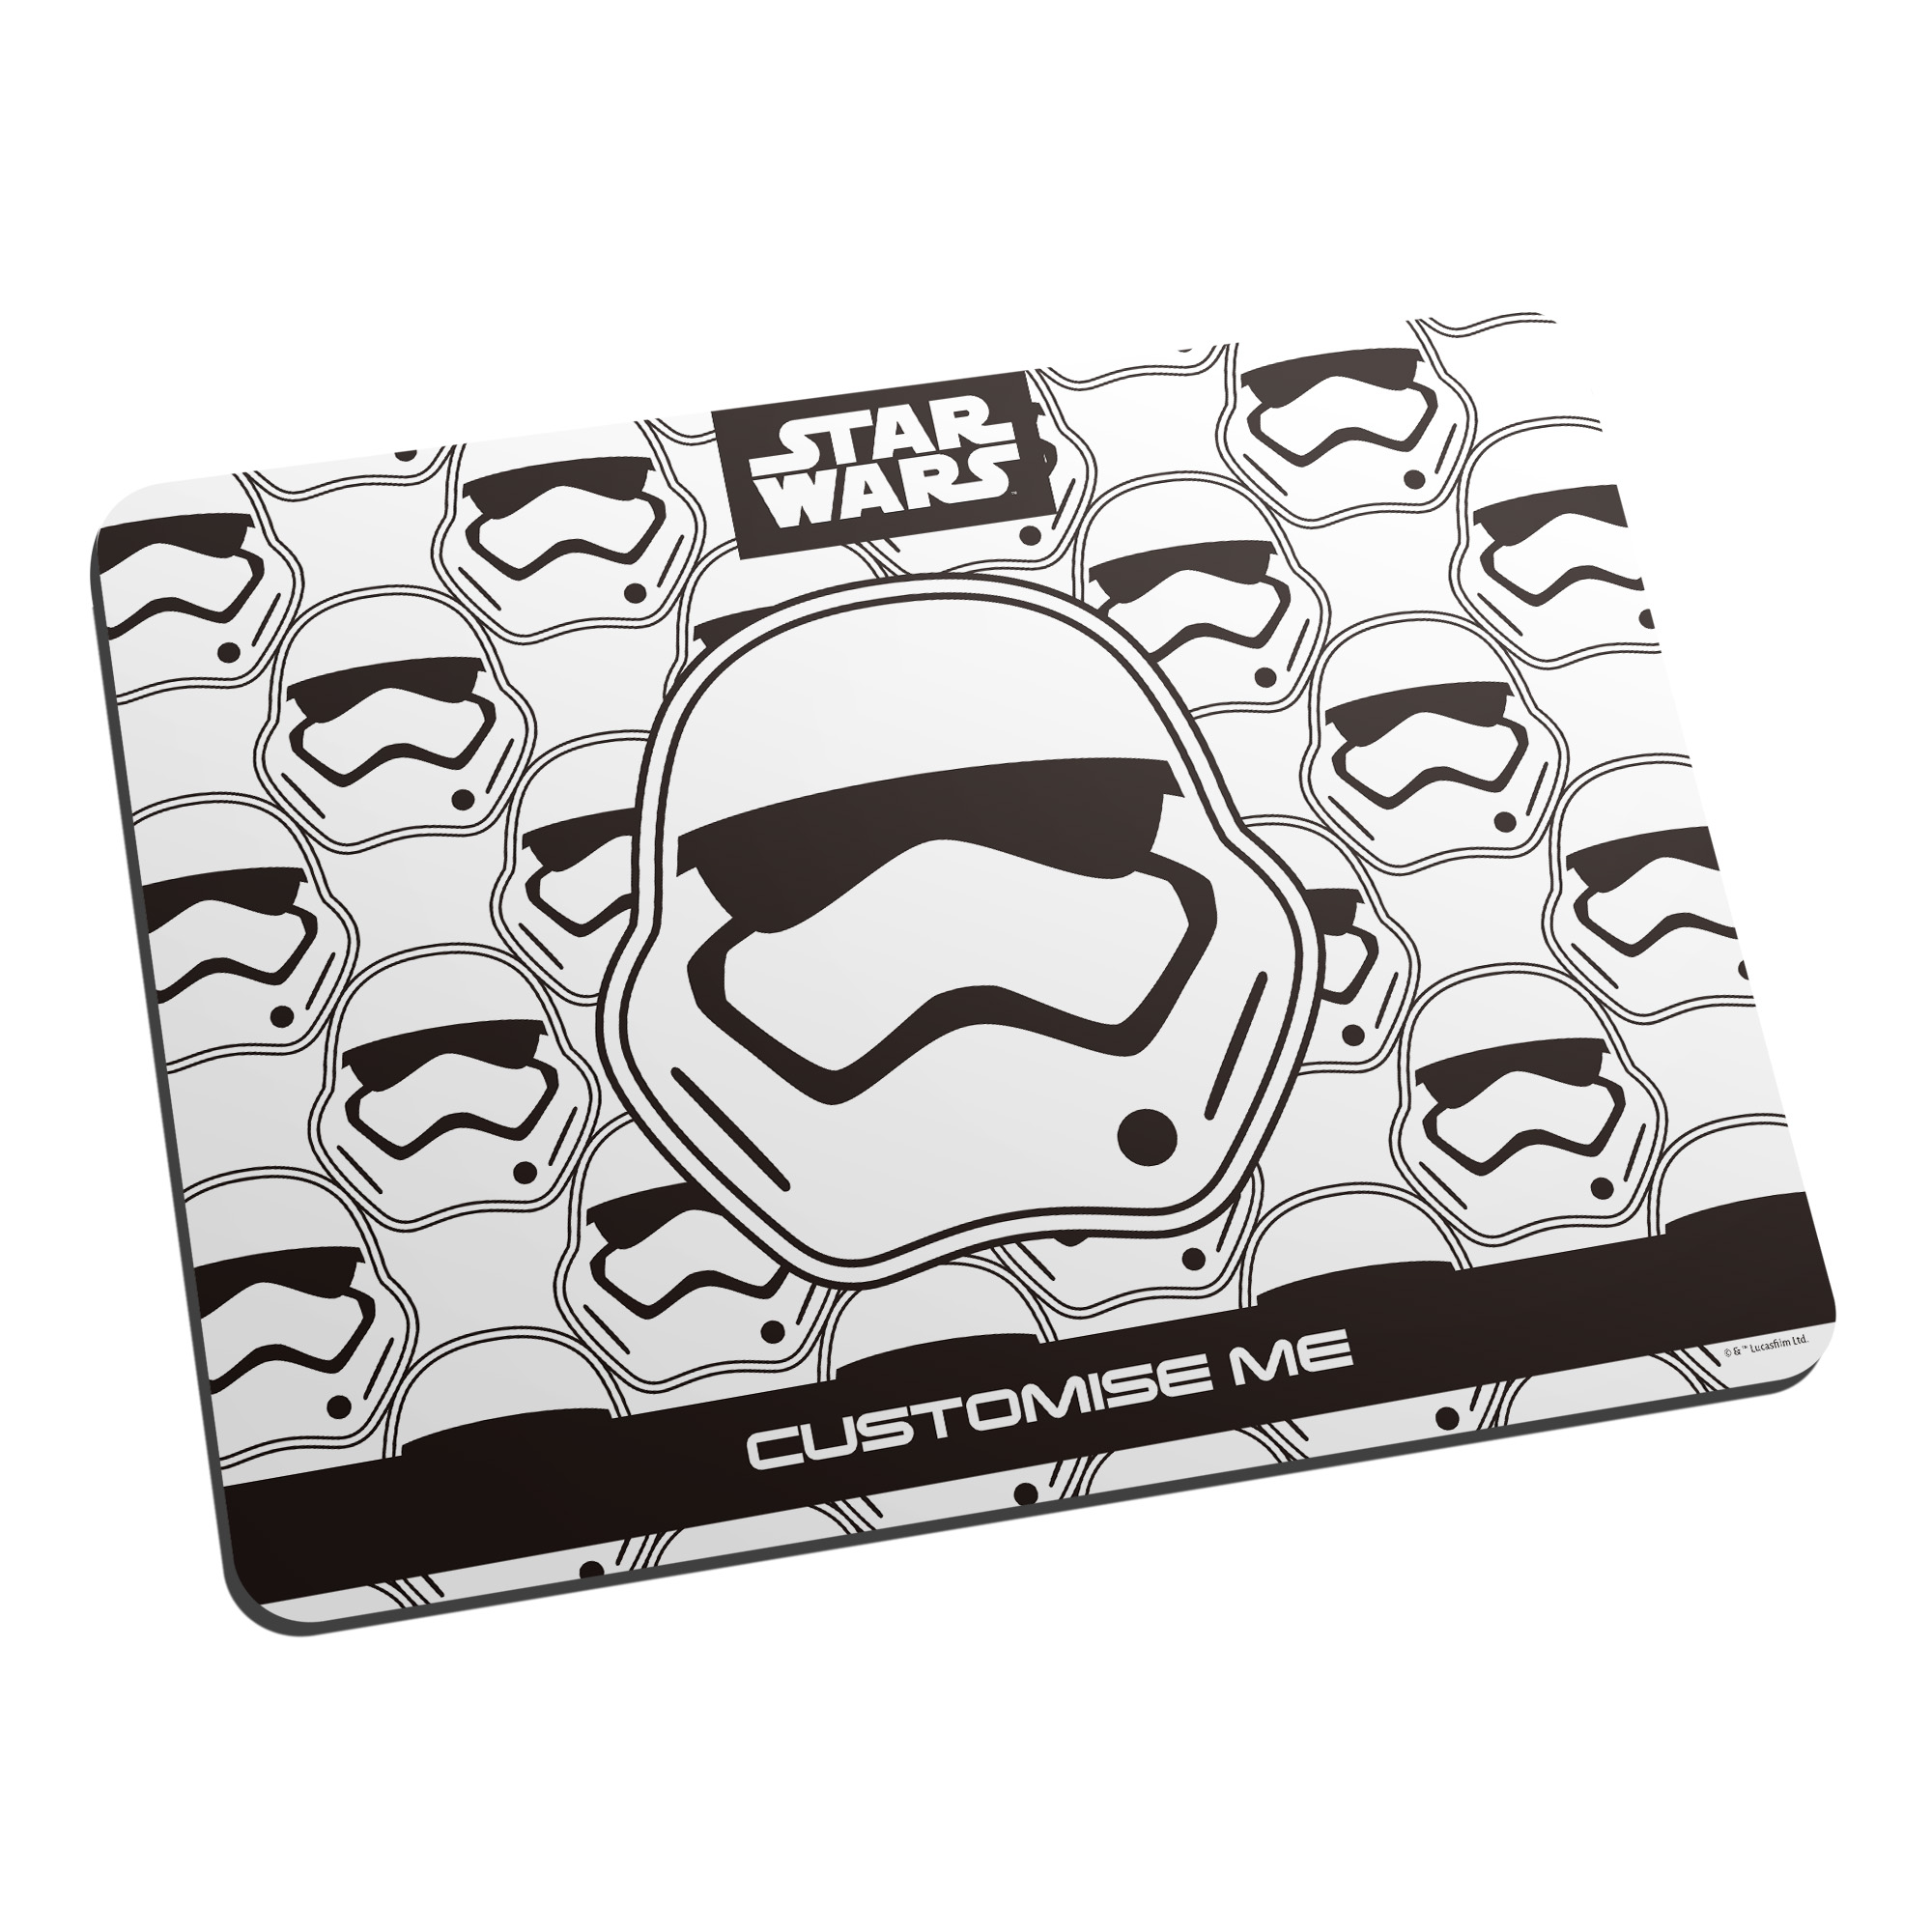 Star Wars Storm Trooper Mouse Mat